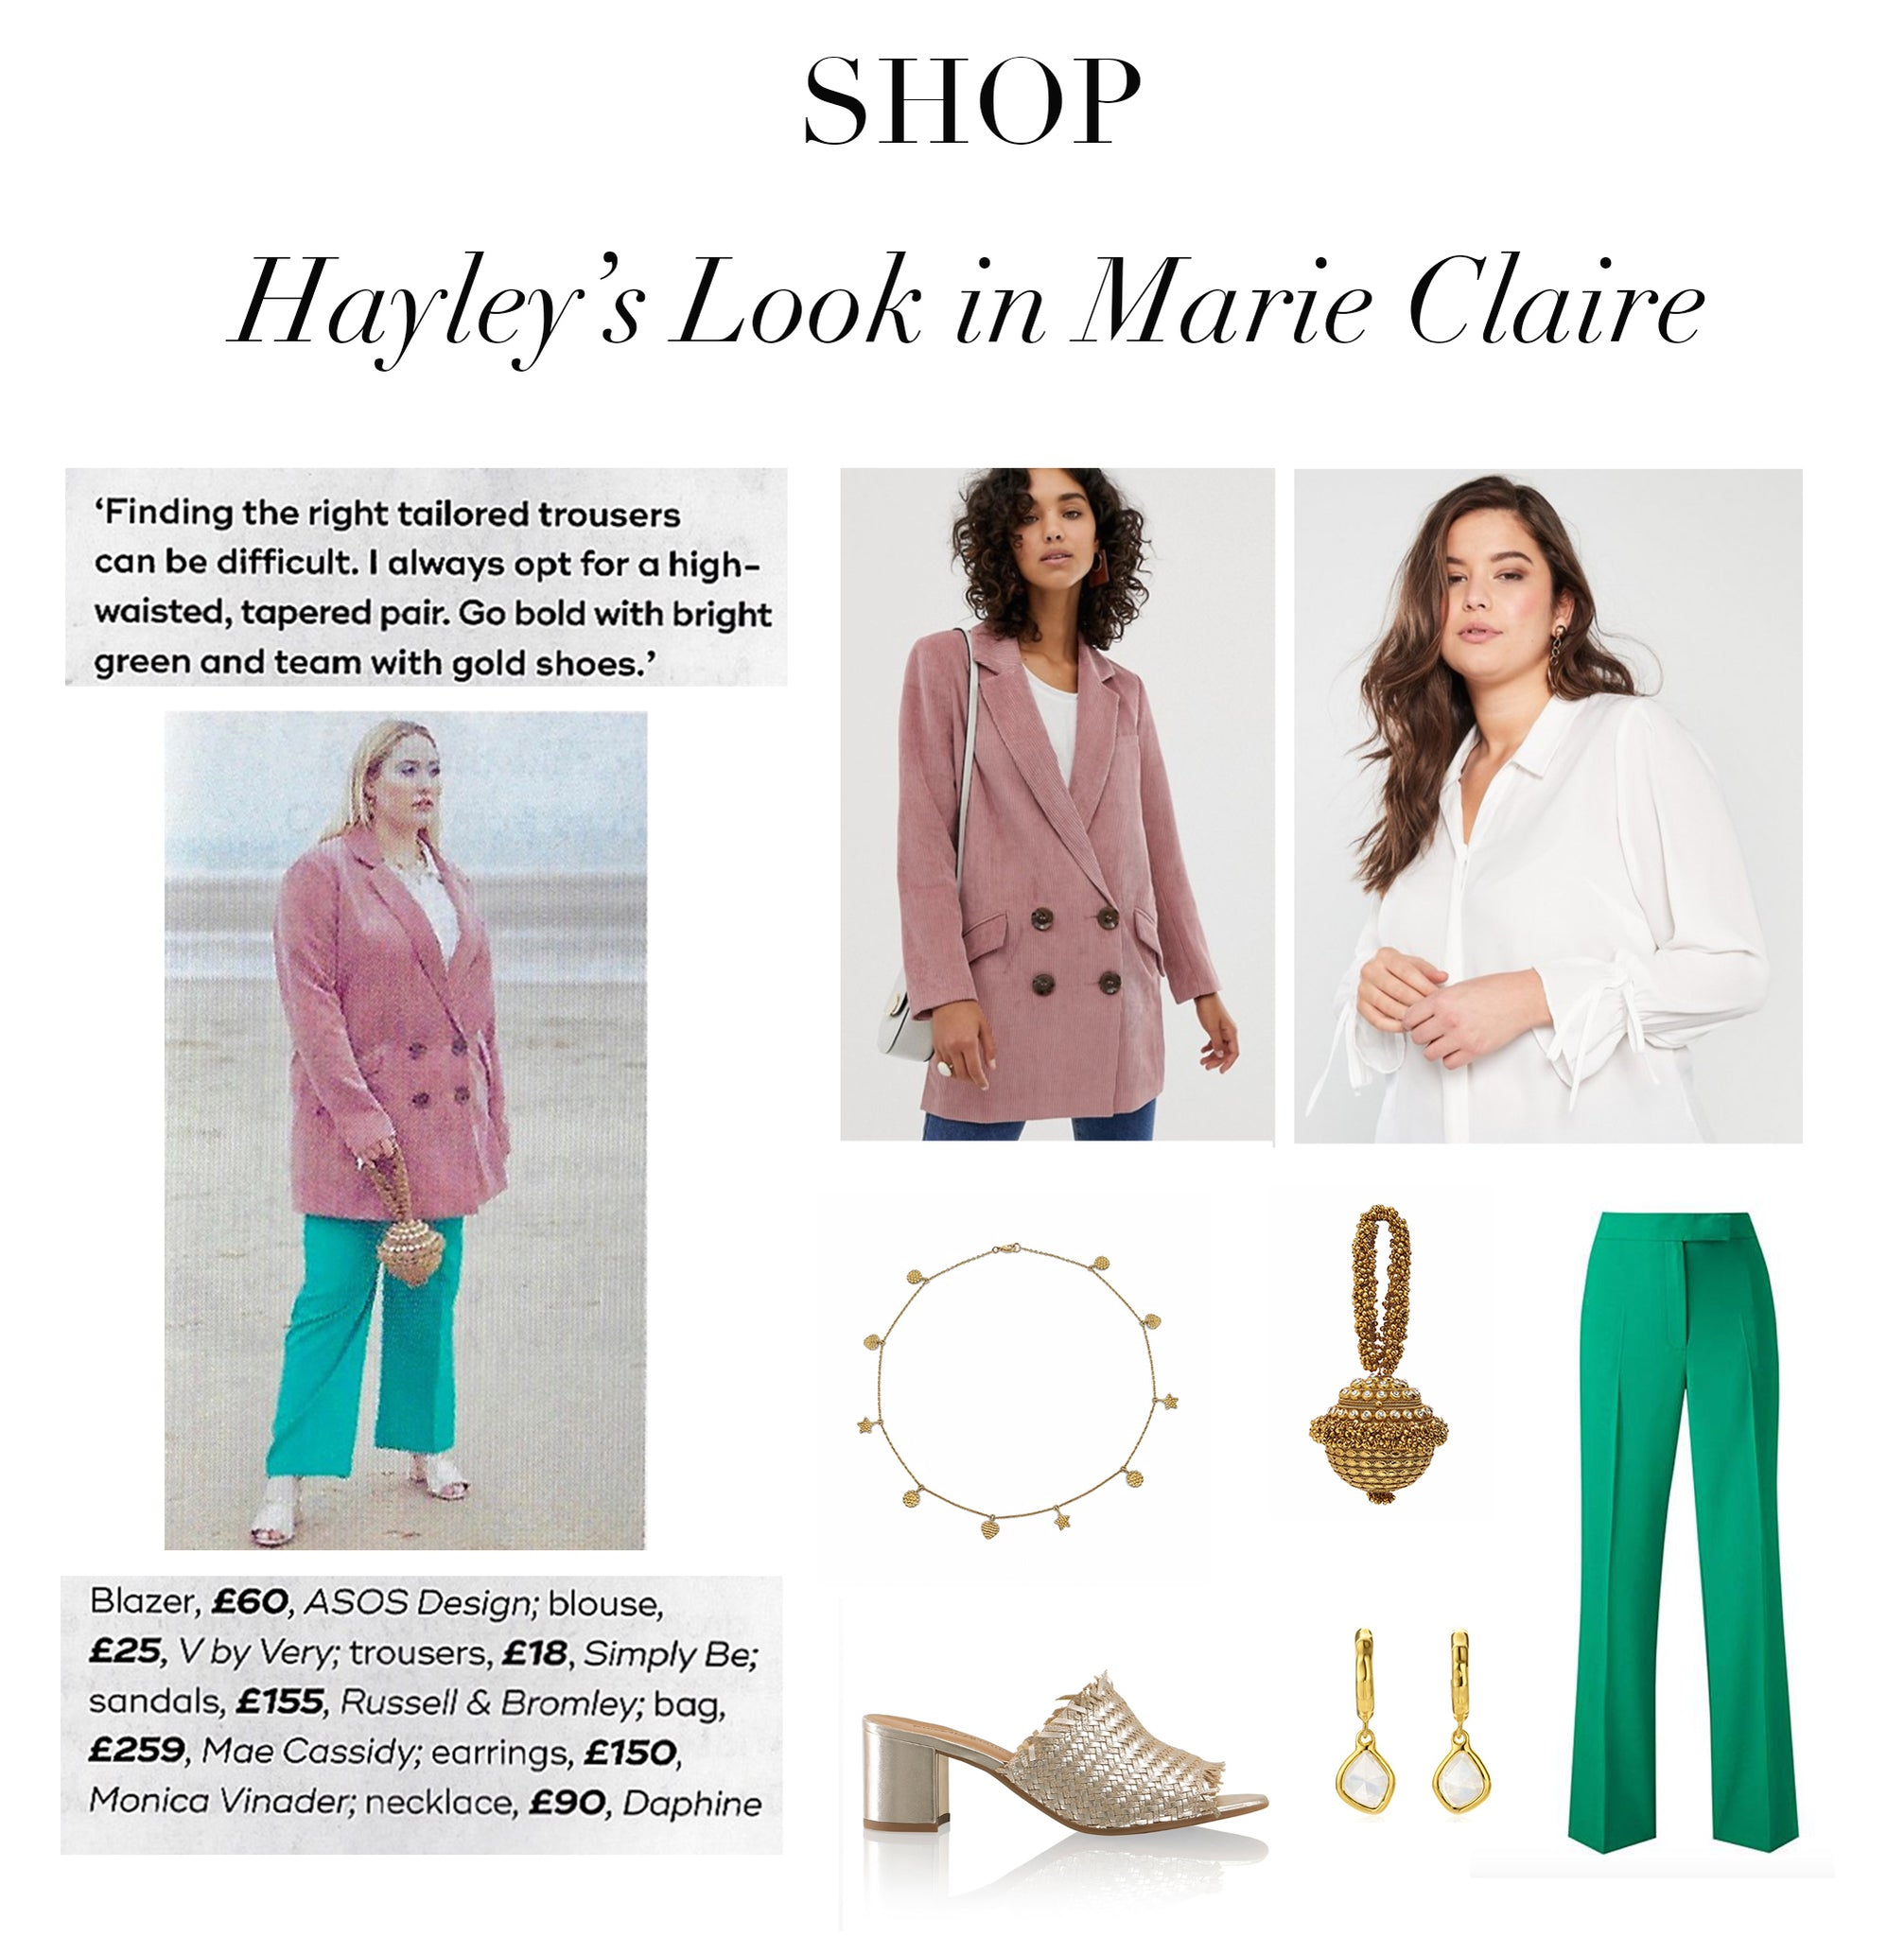 Mae Cassidy feature Marie Claire's June Issue 2019. Resident columnist Hayley Hasselhoff styles our Antique Gold Simi Sparkle clutch bag Curve Column, 'Sorbet Chic' blush pink mint green pastel trends high street  Antique Gold Simi Sparkle oversized tailored Cord pink ASOS blazer white V by Very shirt colour green trousers accessorised gold hues Russel Bromley gold leather heeled sandal's Monica Viander Necklace Daphine earrings gold silver Simi Sparkle clutch bag handbag occasionawear perfect addition to any outfit for effortless